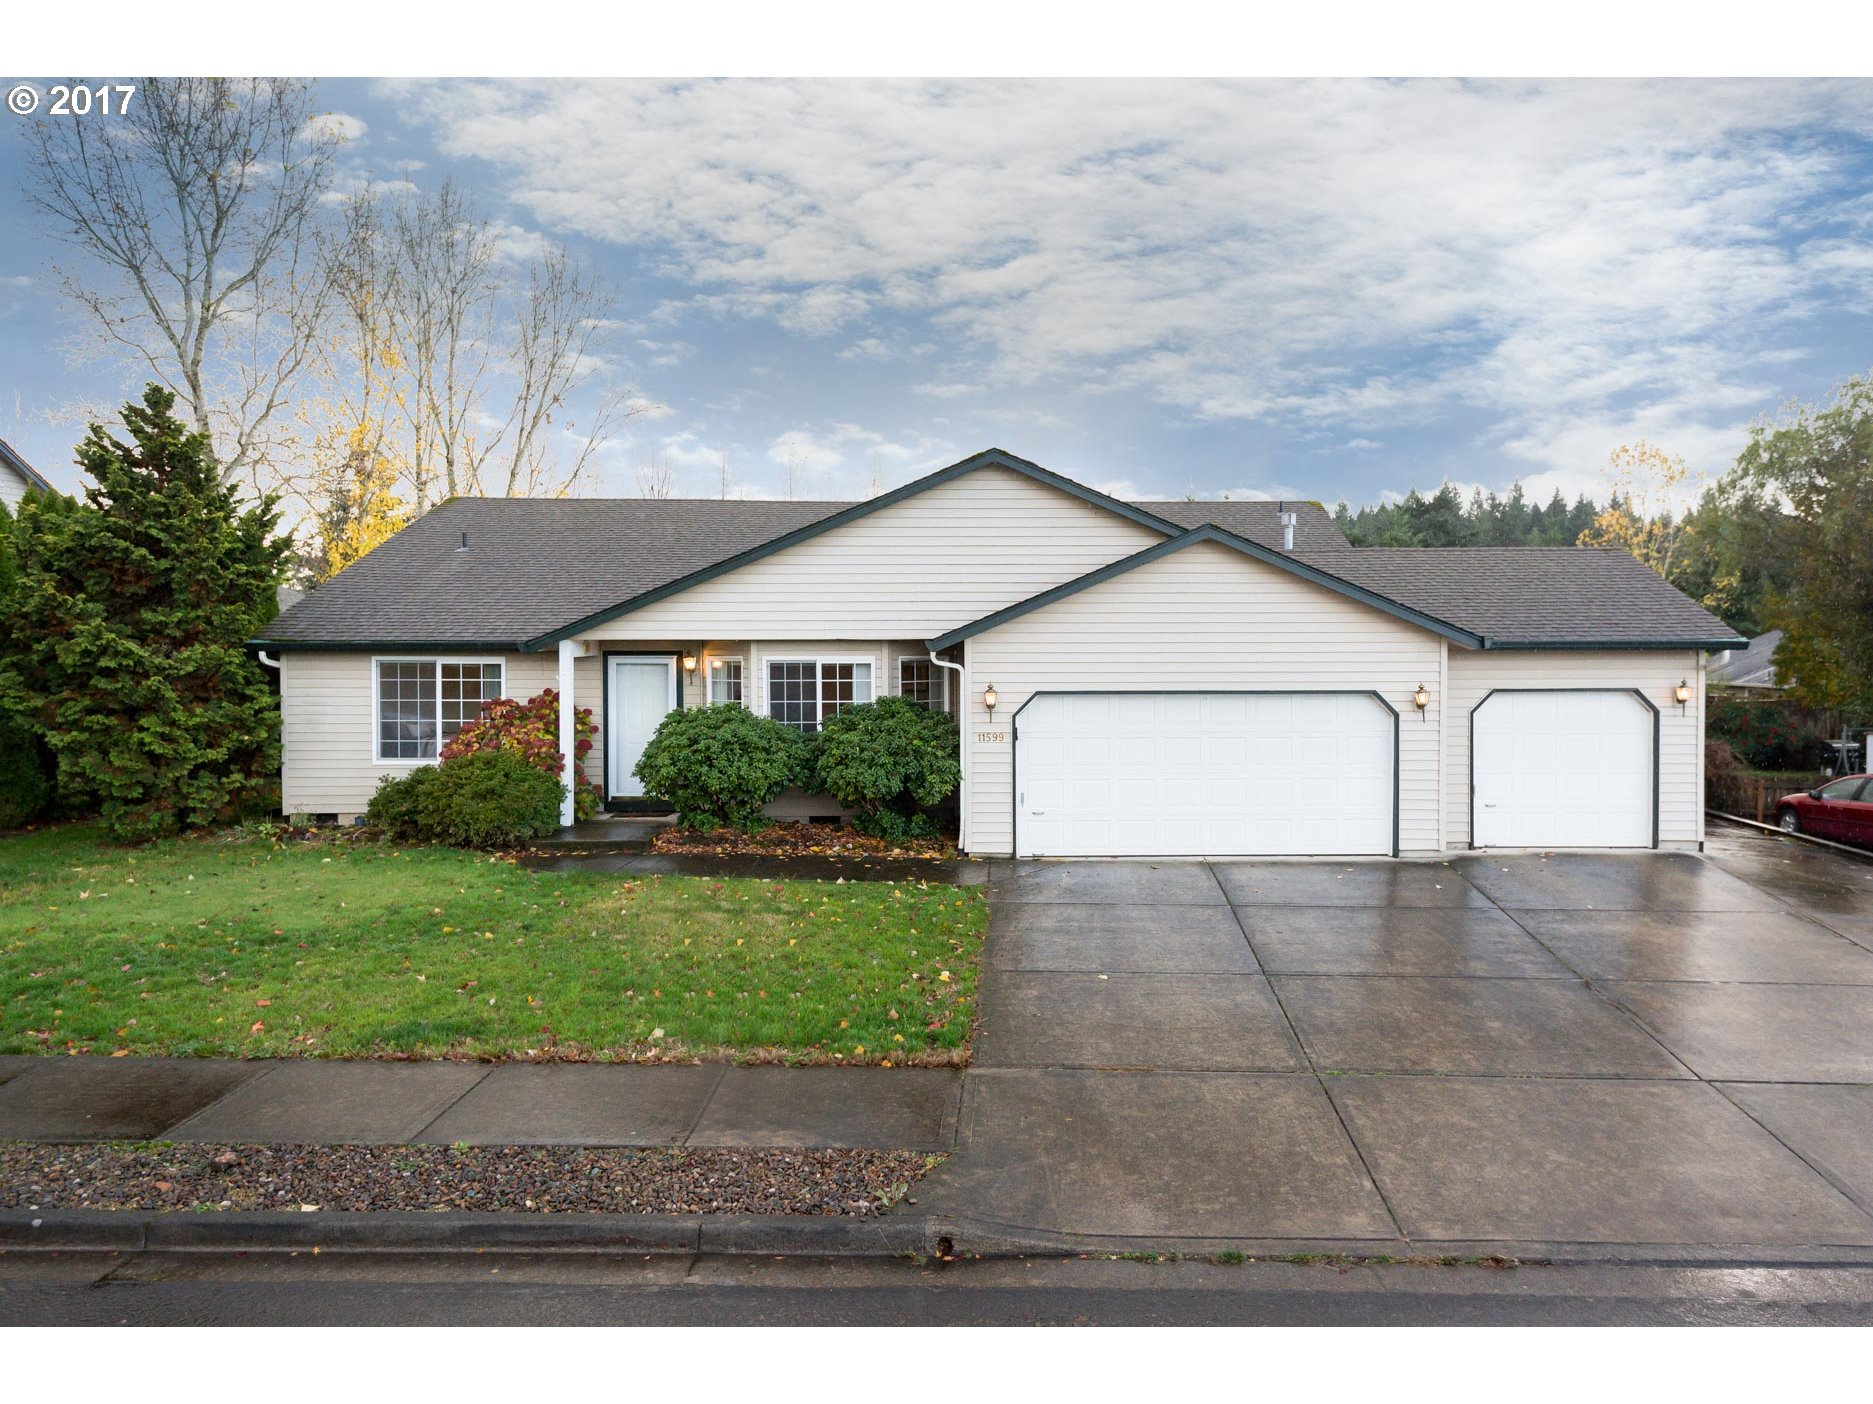 11599 DAHLIA TER, Oregon City, OR 97045